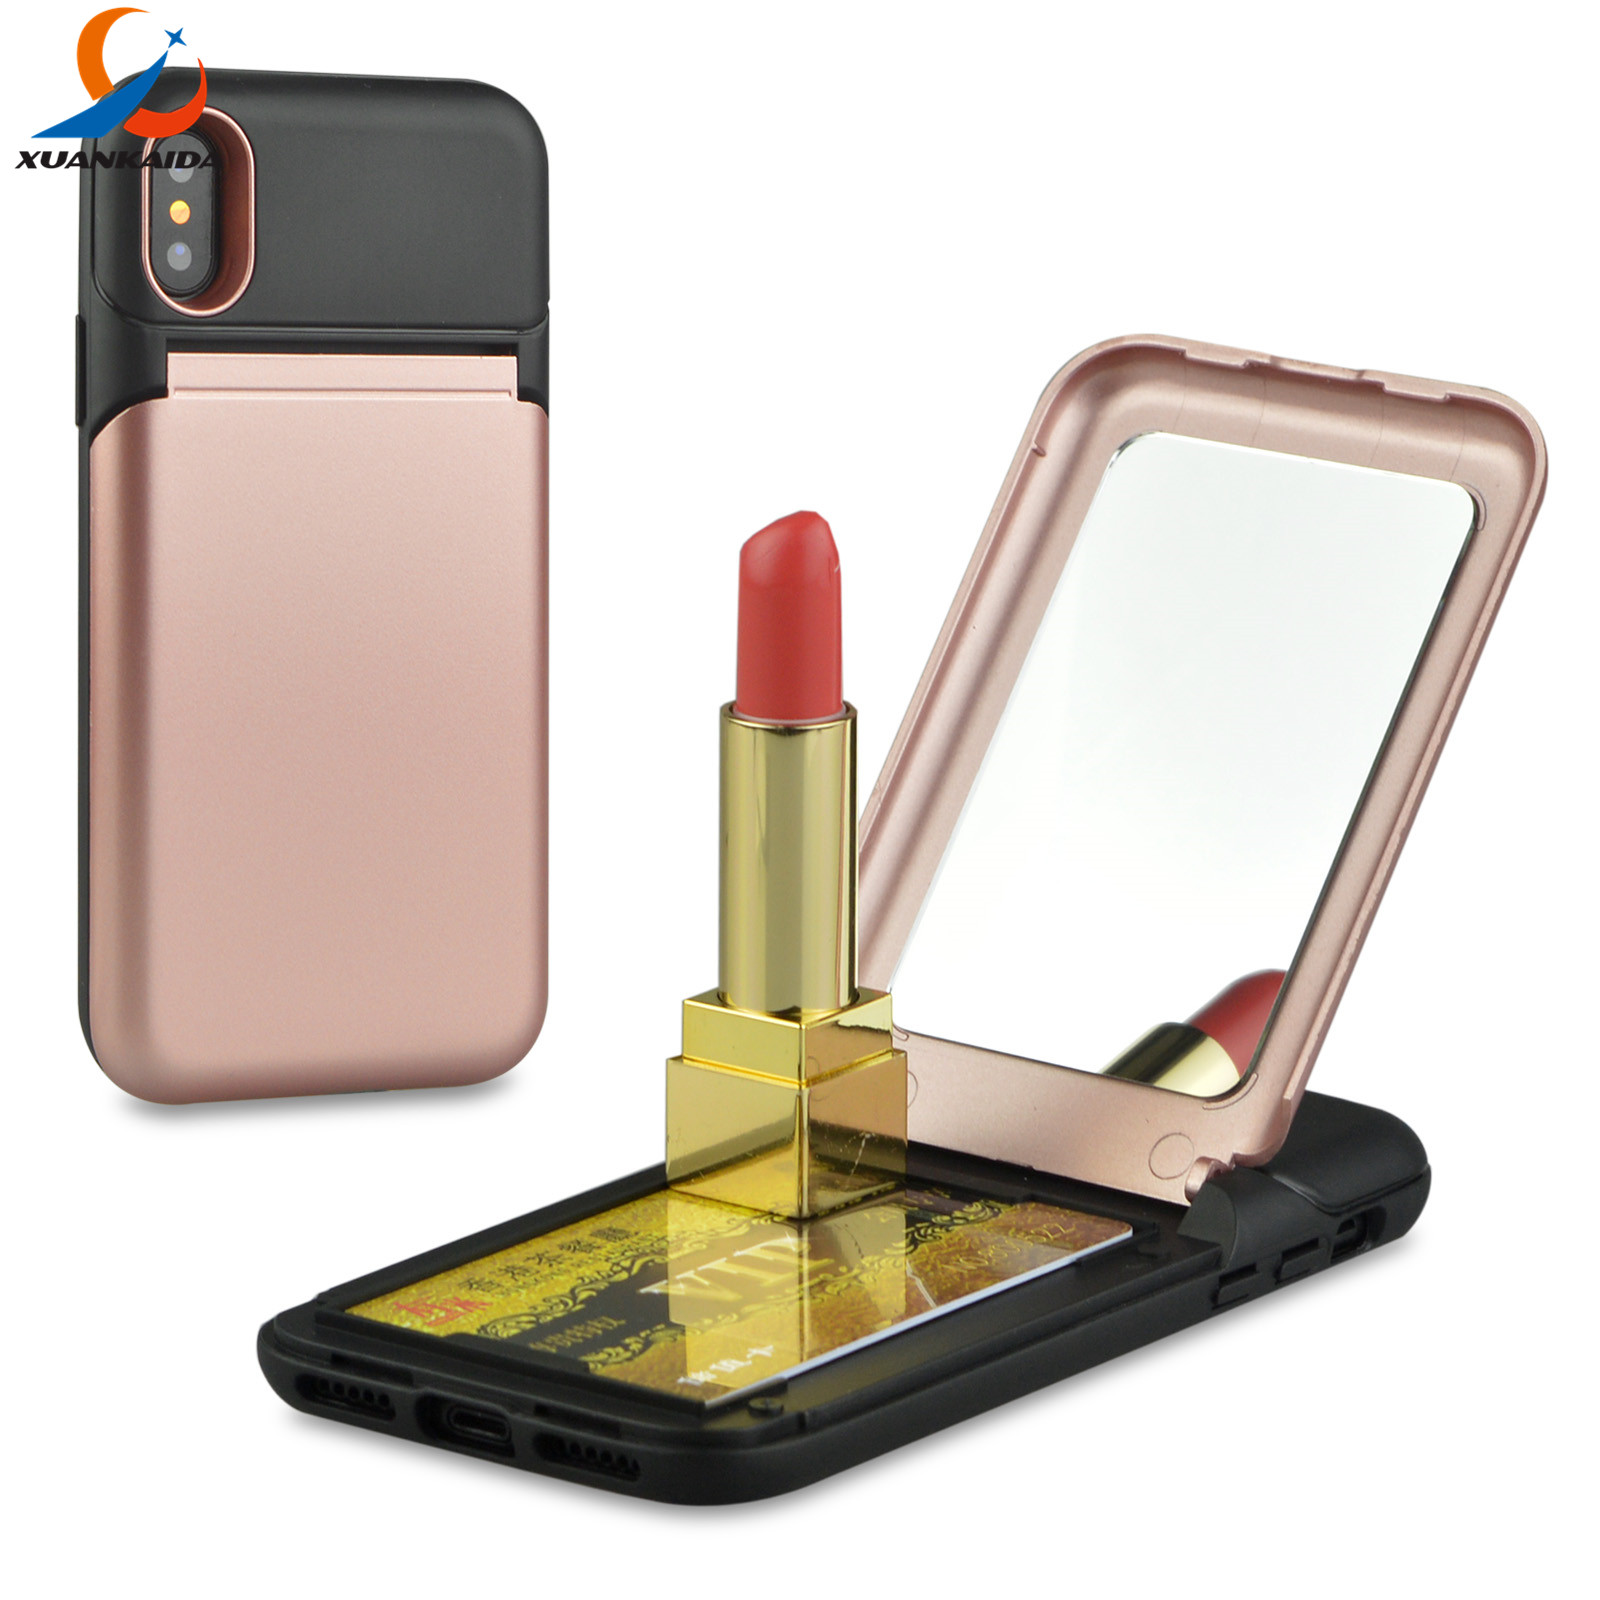 Makeup stand Mirror Hidden Credit Card Holder ID Slot Hard Plastic Phone cover For Samsung Note8 S8 Plus For Iphone X 8 7 6 6S